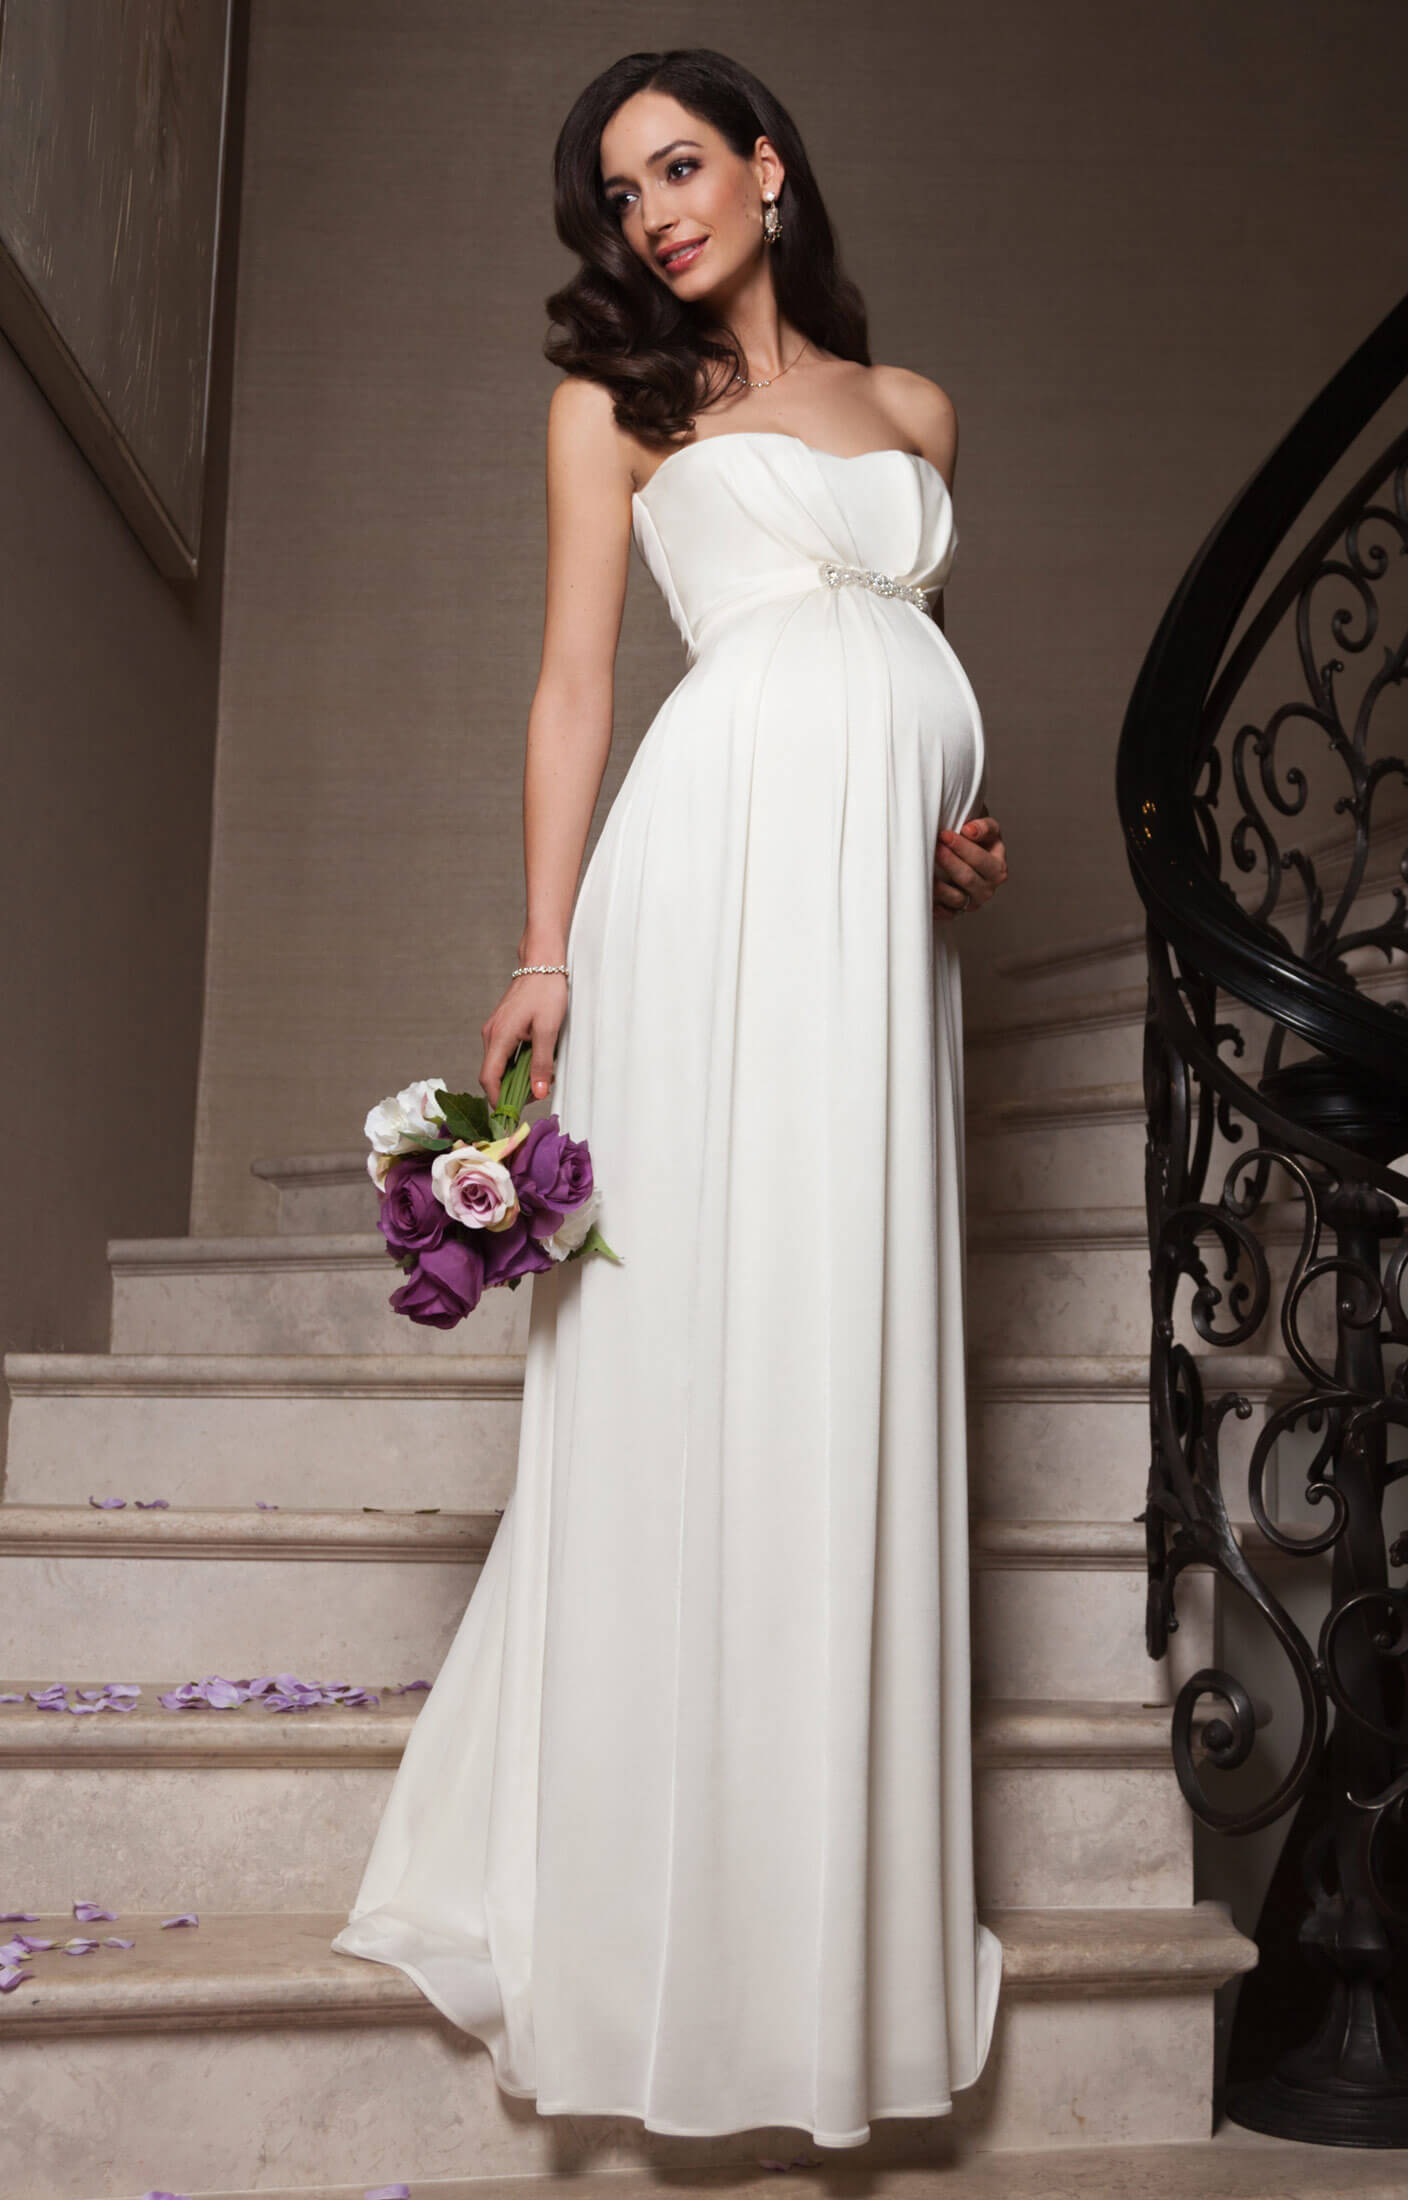 Annabella Maternity Wedding Gown (Ivory) party wedding dresses Annabella Maternity Wedding Gown Ivory by Tiffany Rose